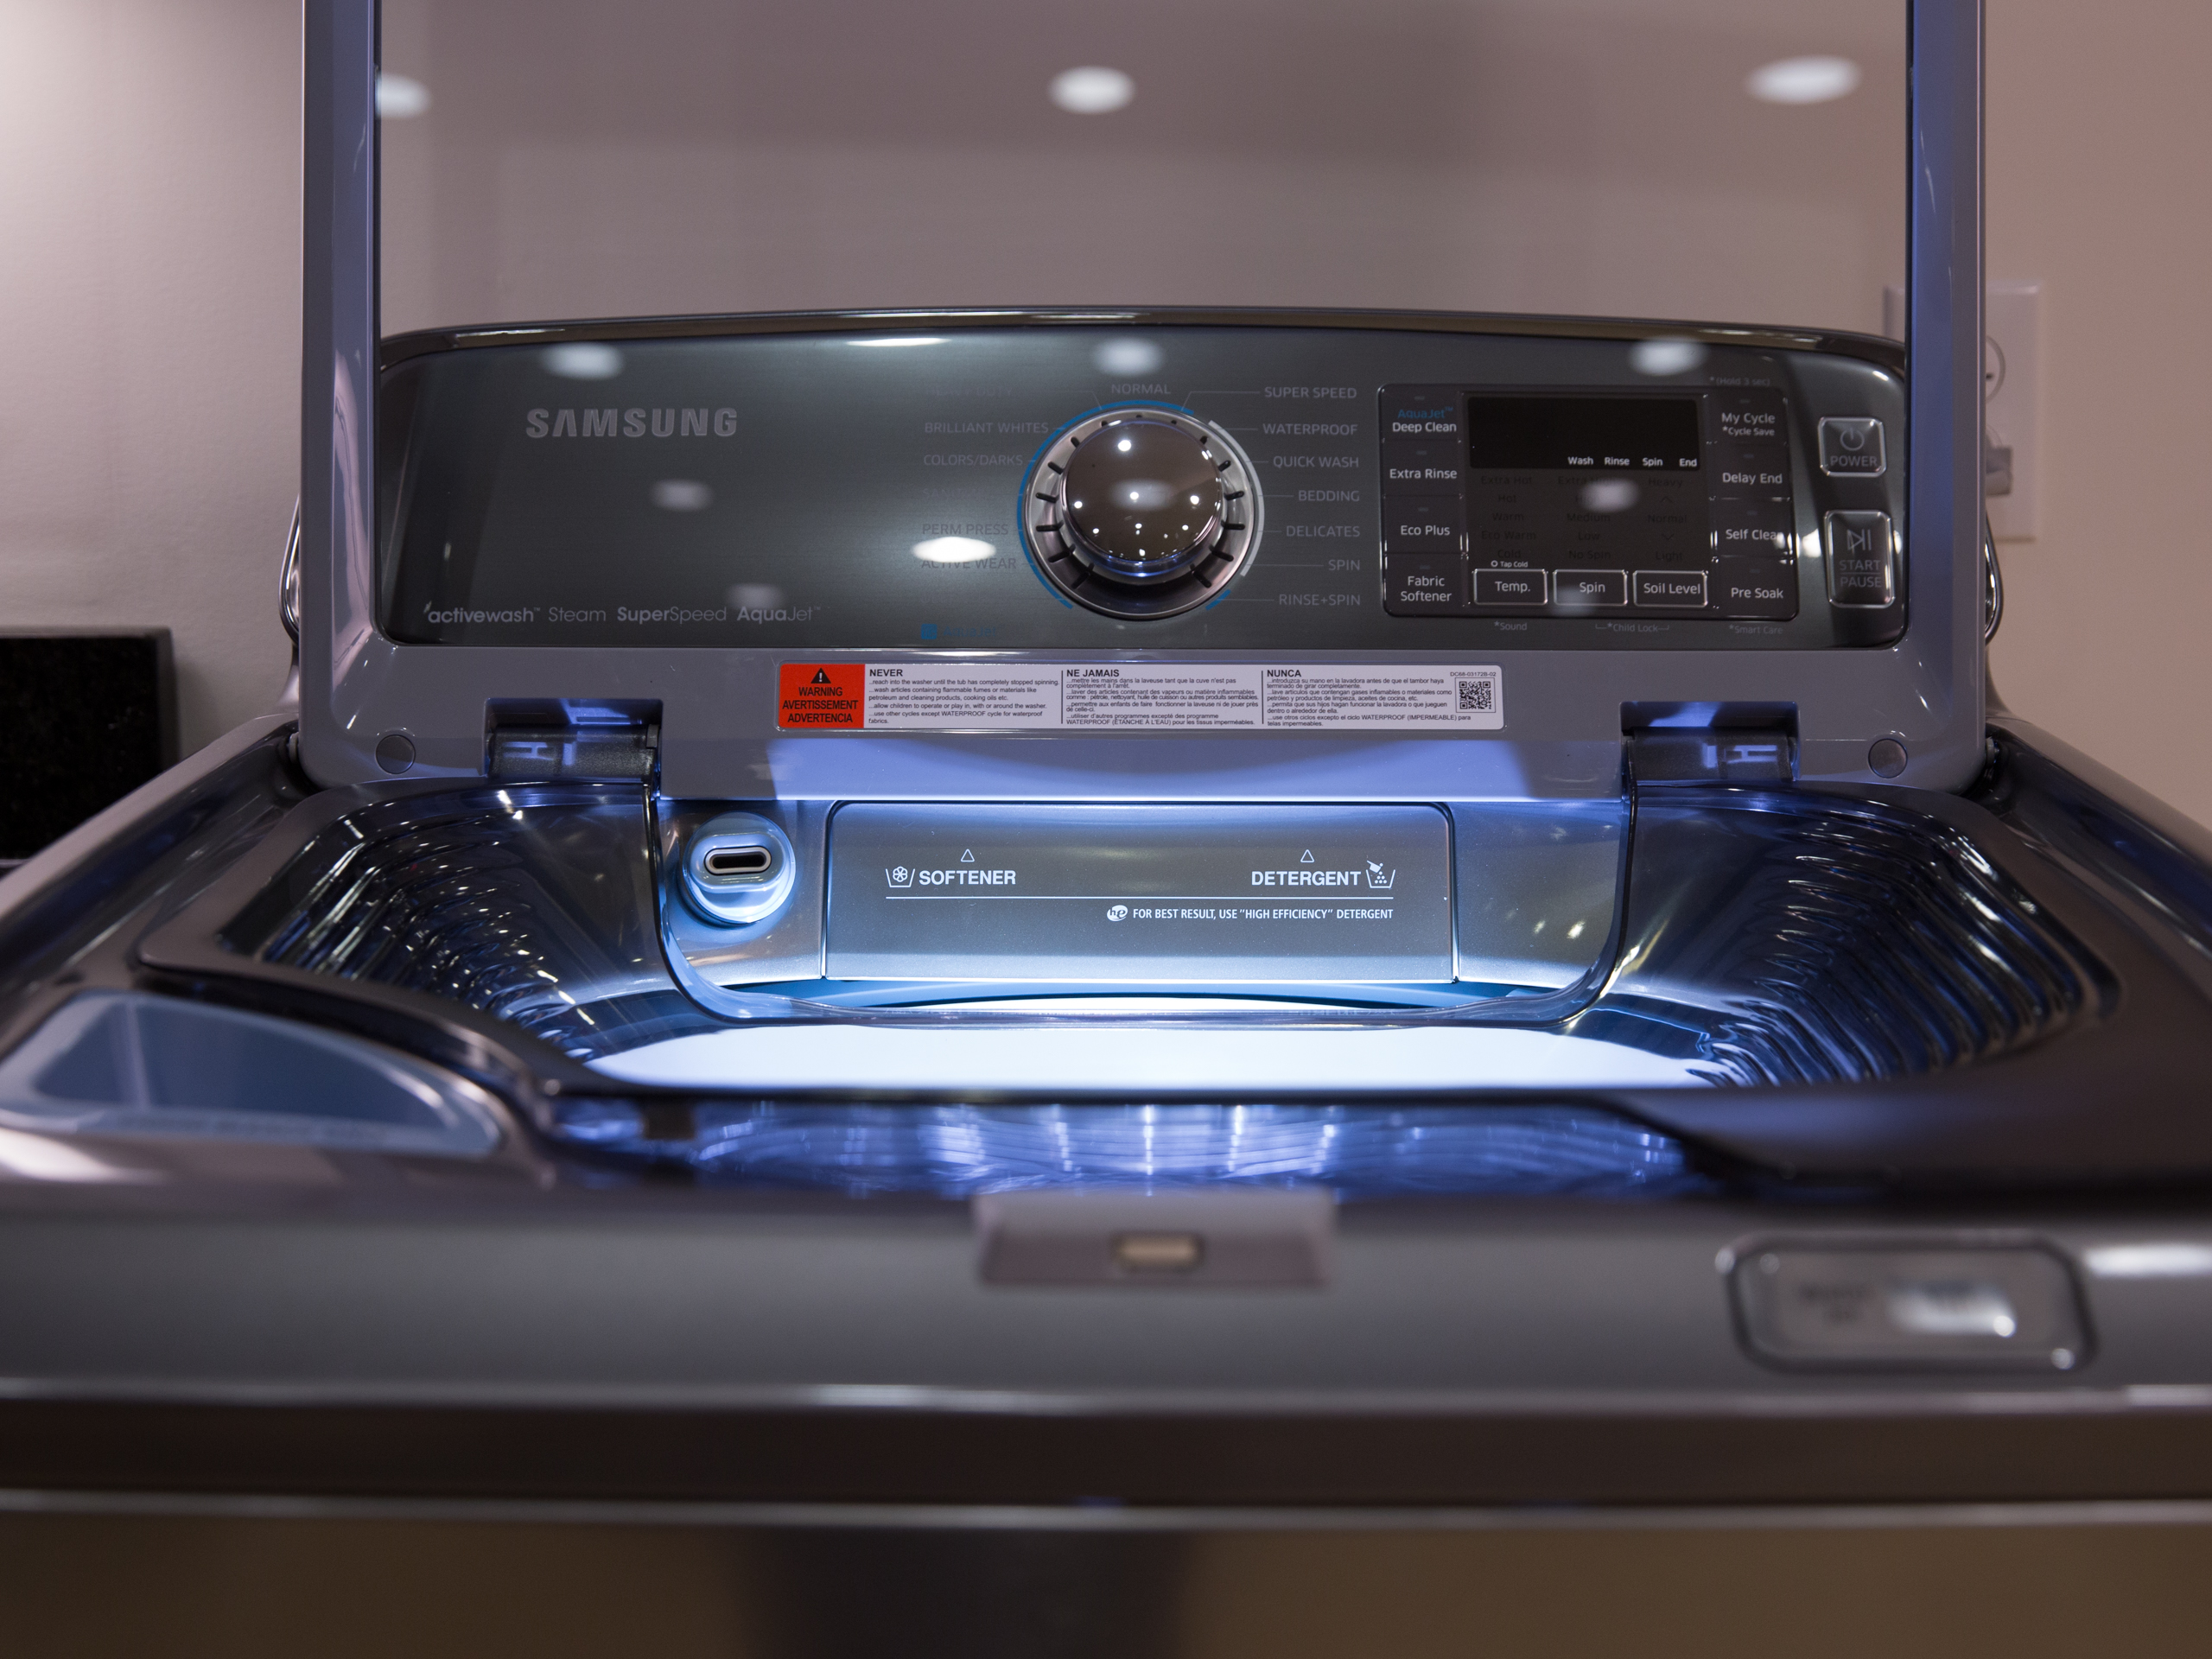 samsung washing machine commercial 2015